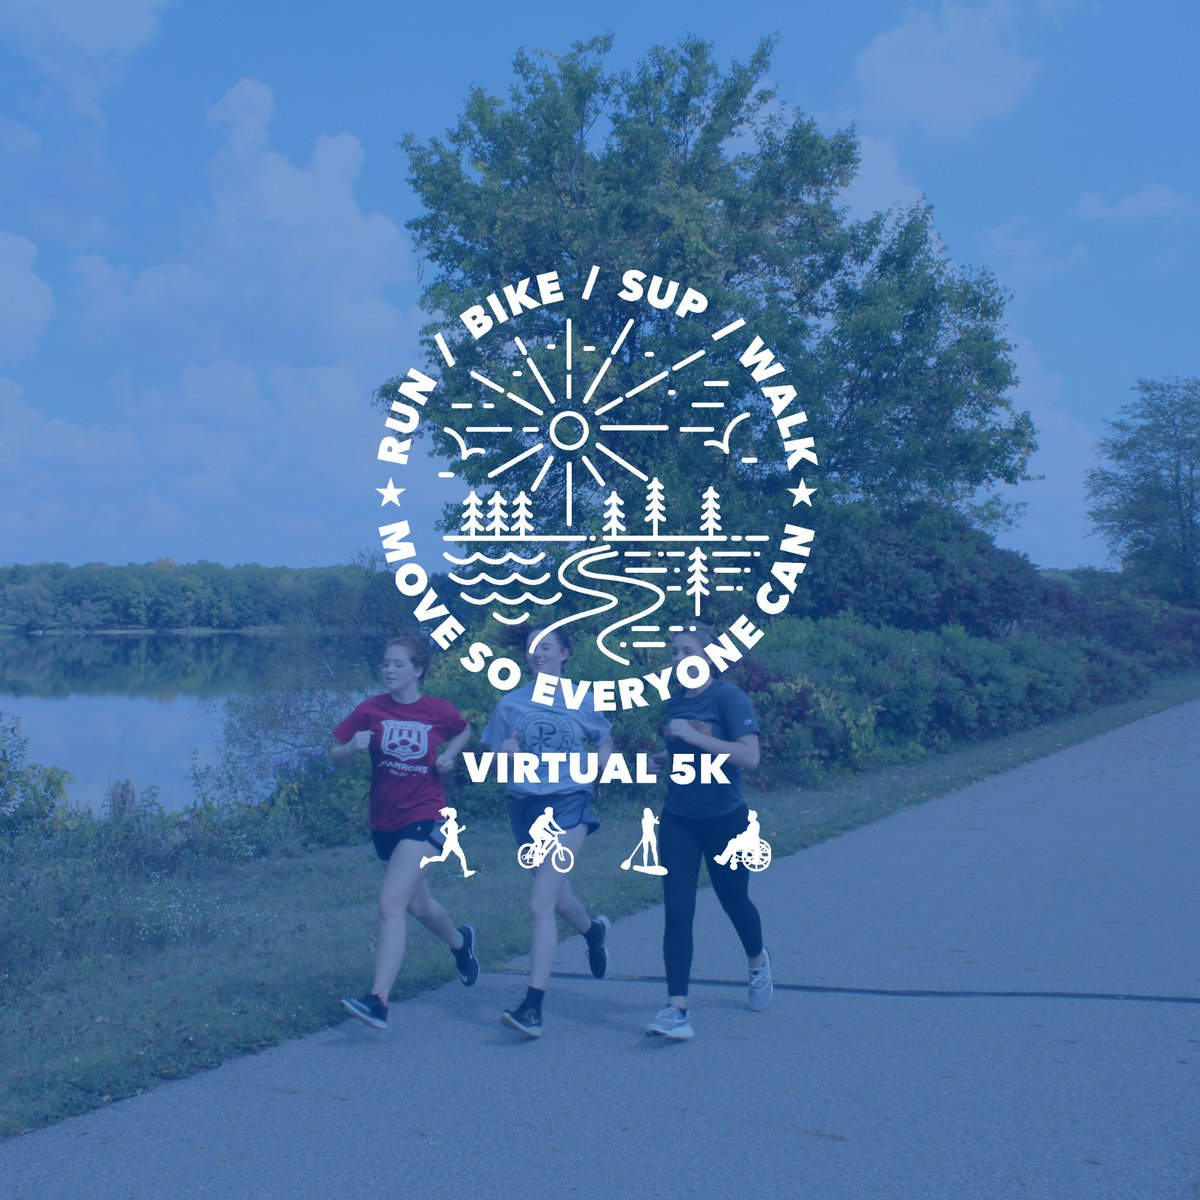 The mParks Foundation is hosting a Virtual 5k the month of September to raise funds for accessible recreation opportunities. Run, walk, skateboard, SUP, bike, surf, handcycle or swim a 5k anytime during the month. Register at .